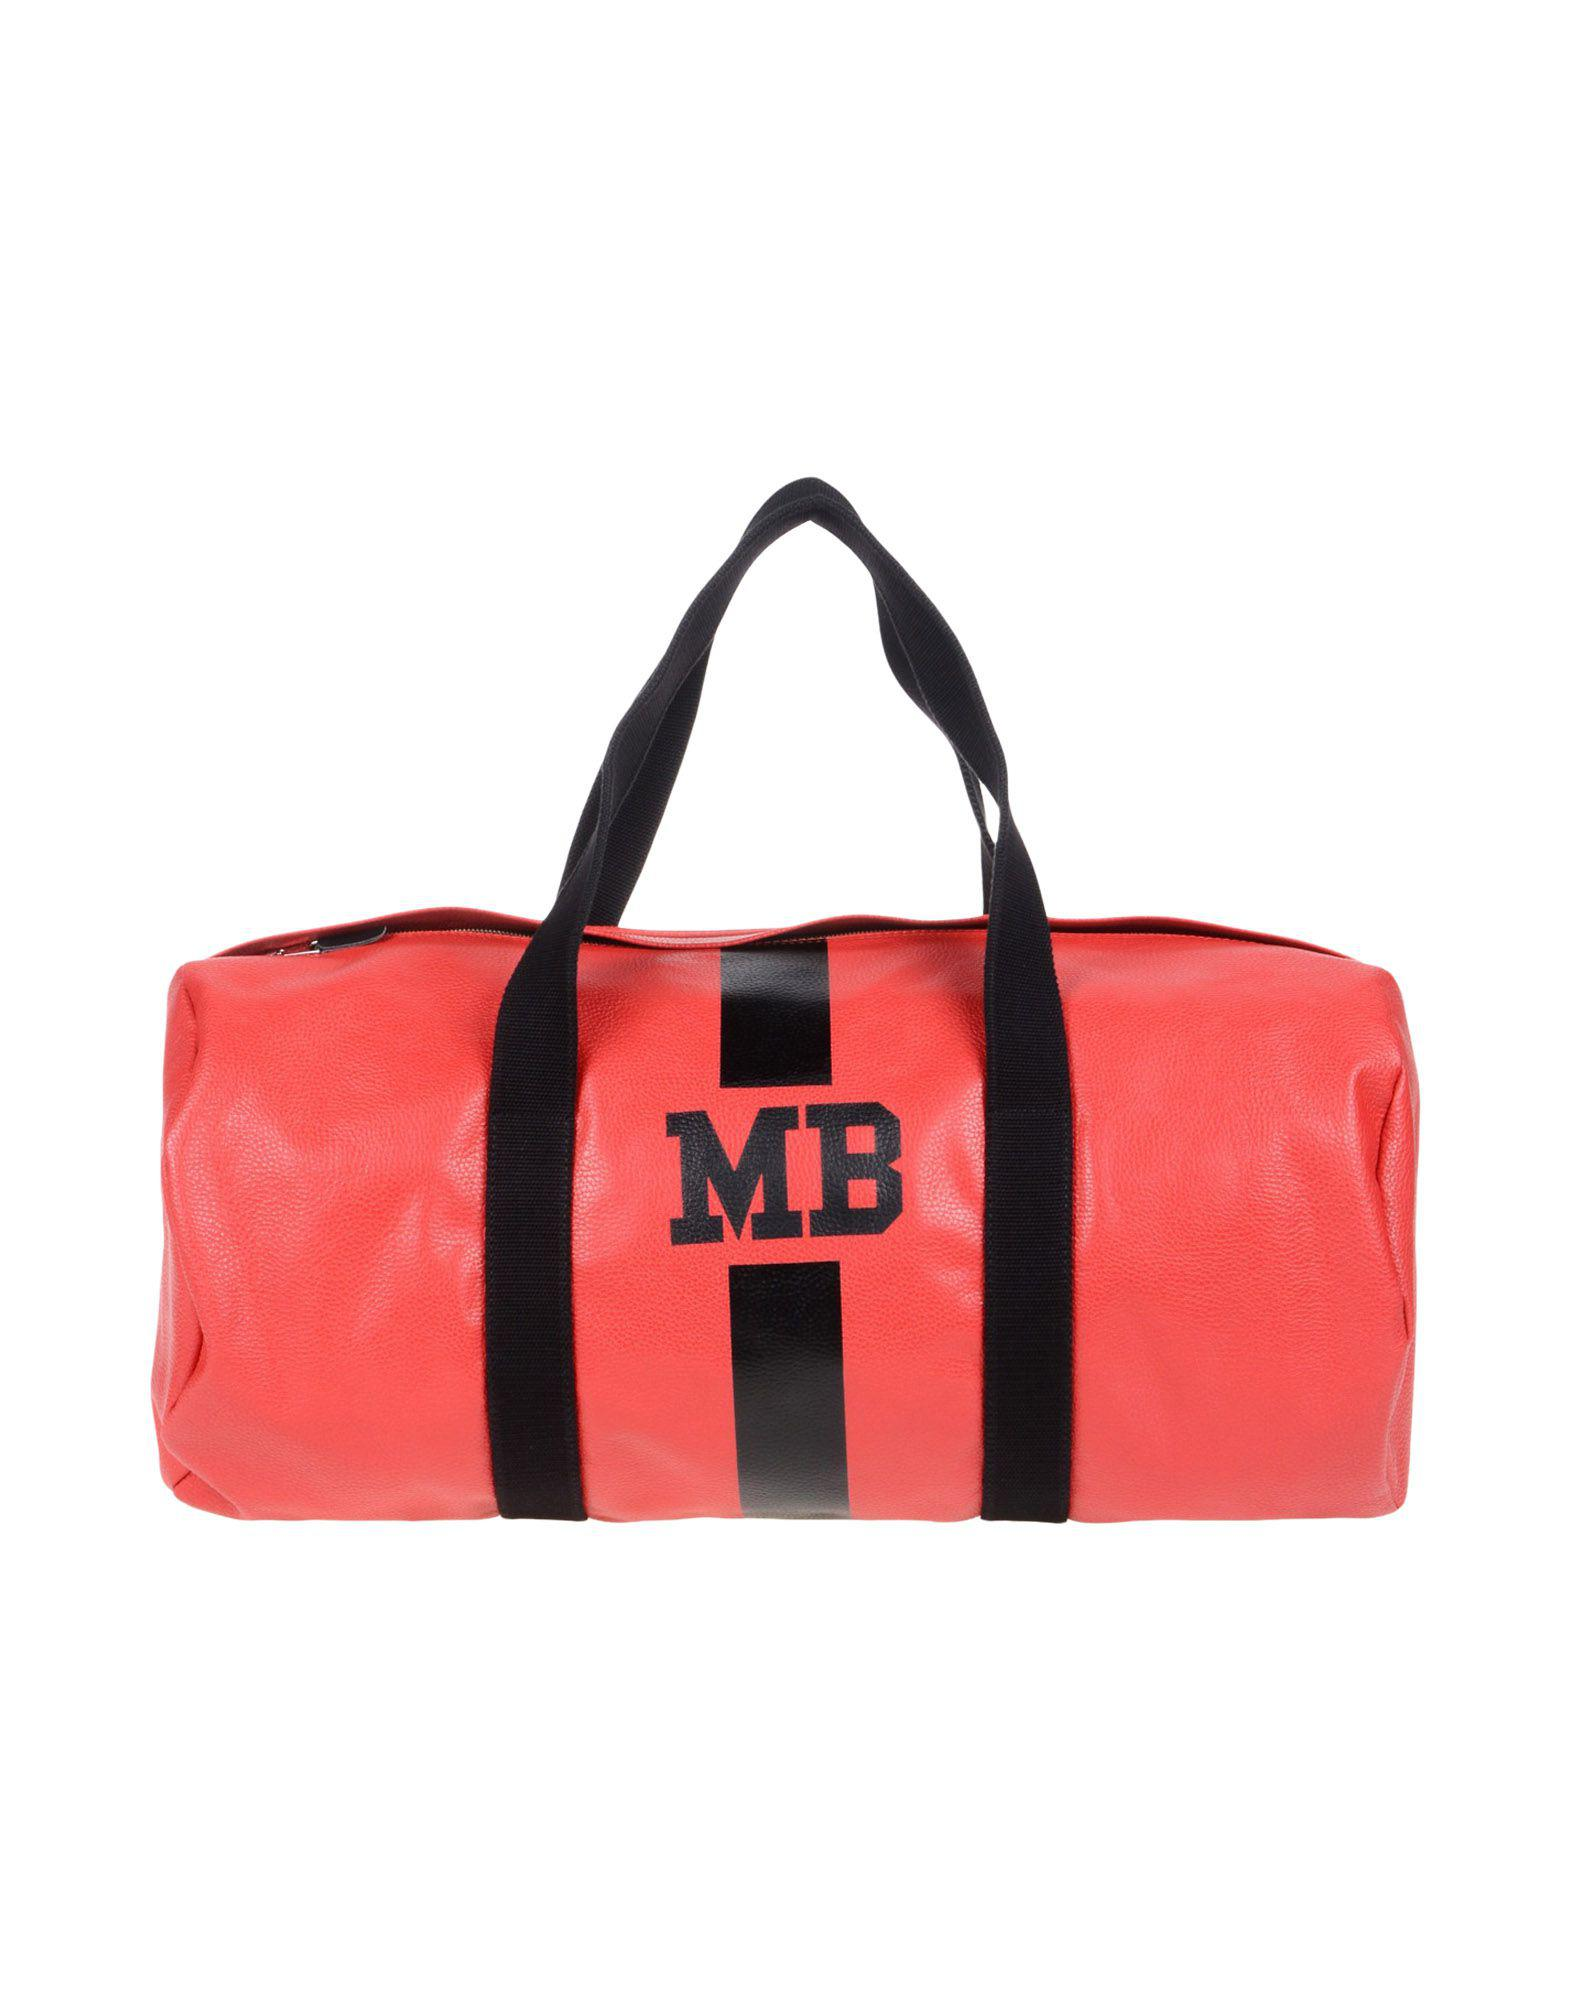 In Red Luggage Mia Lyst Bag qxzTWtO